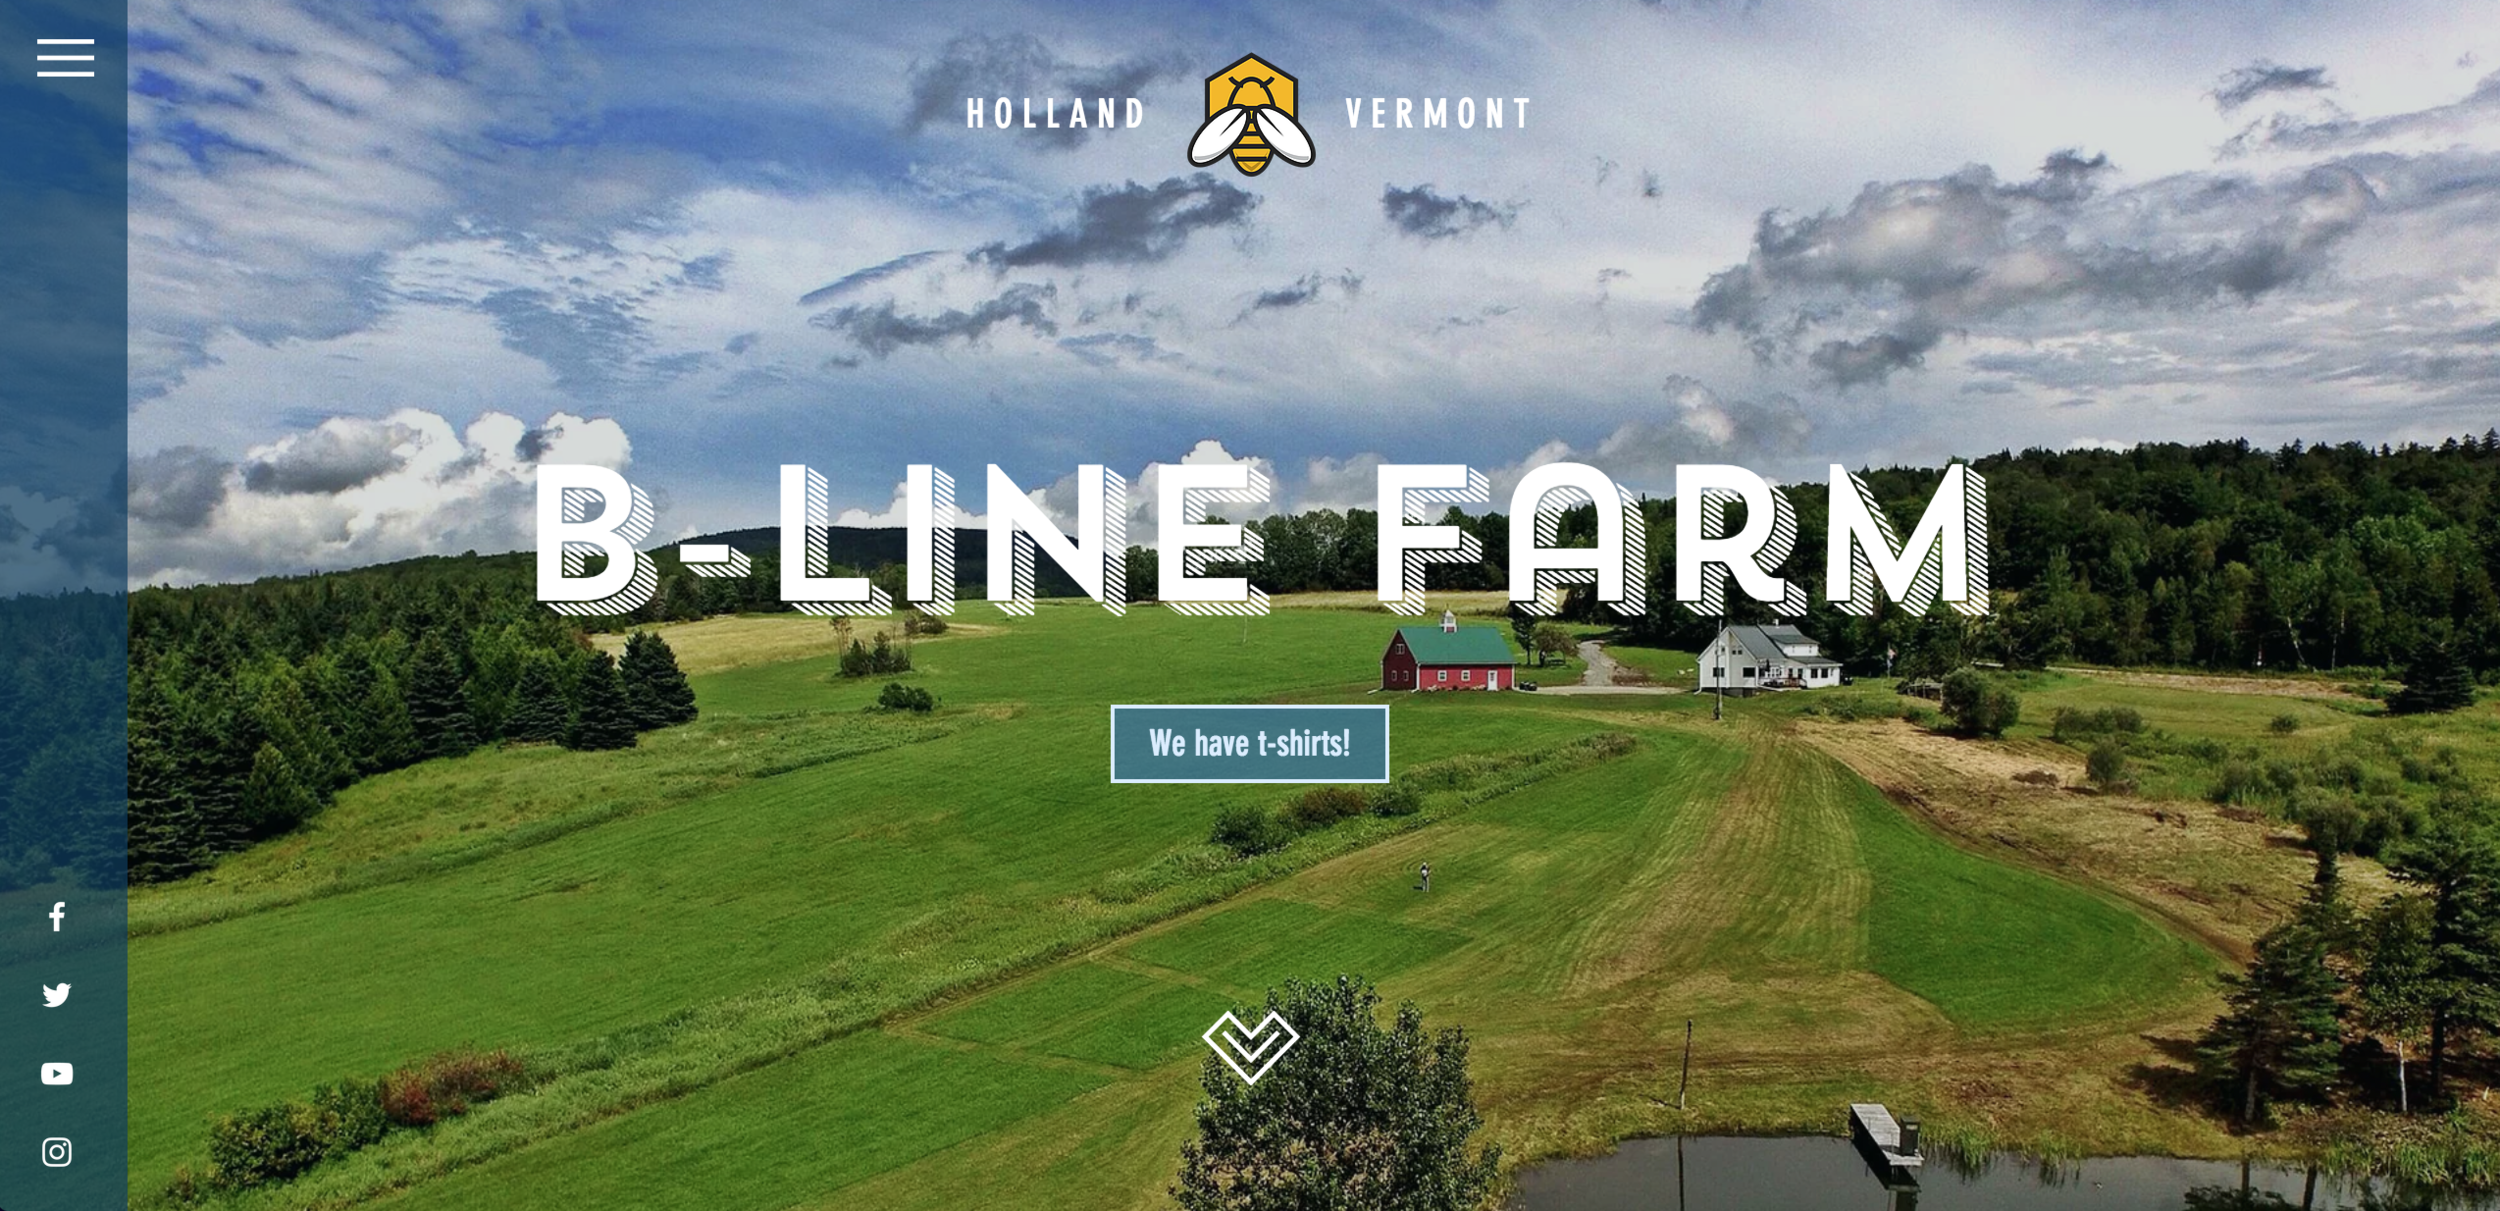 Website Design — B-Line Farm